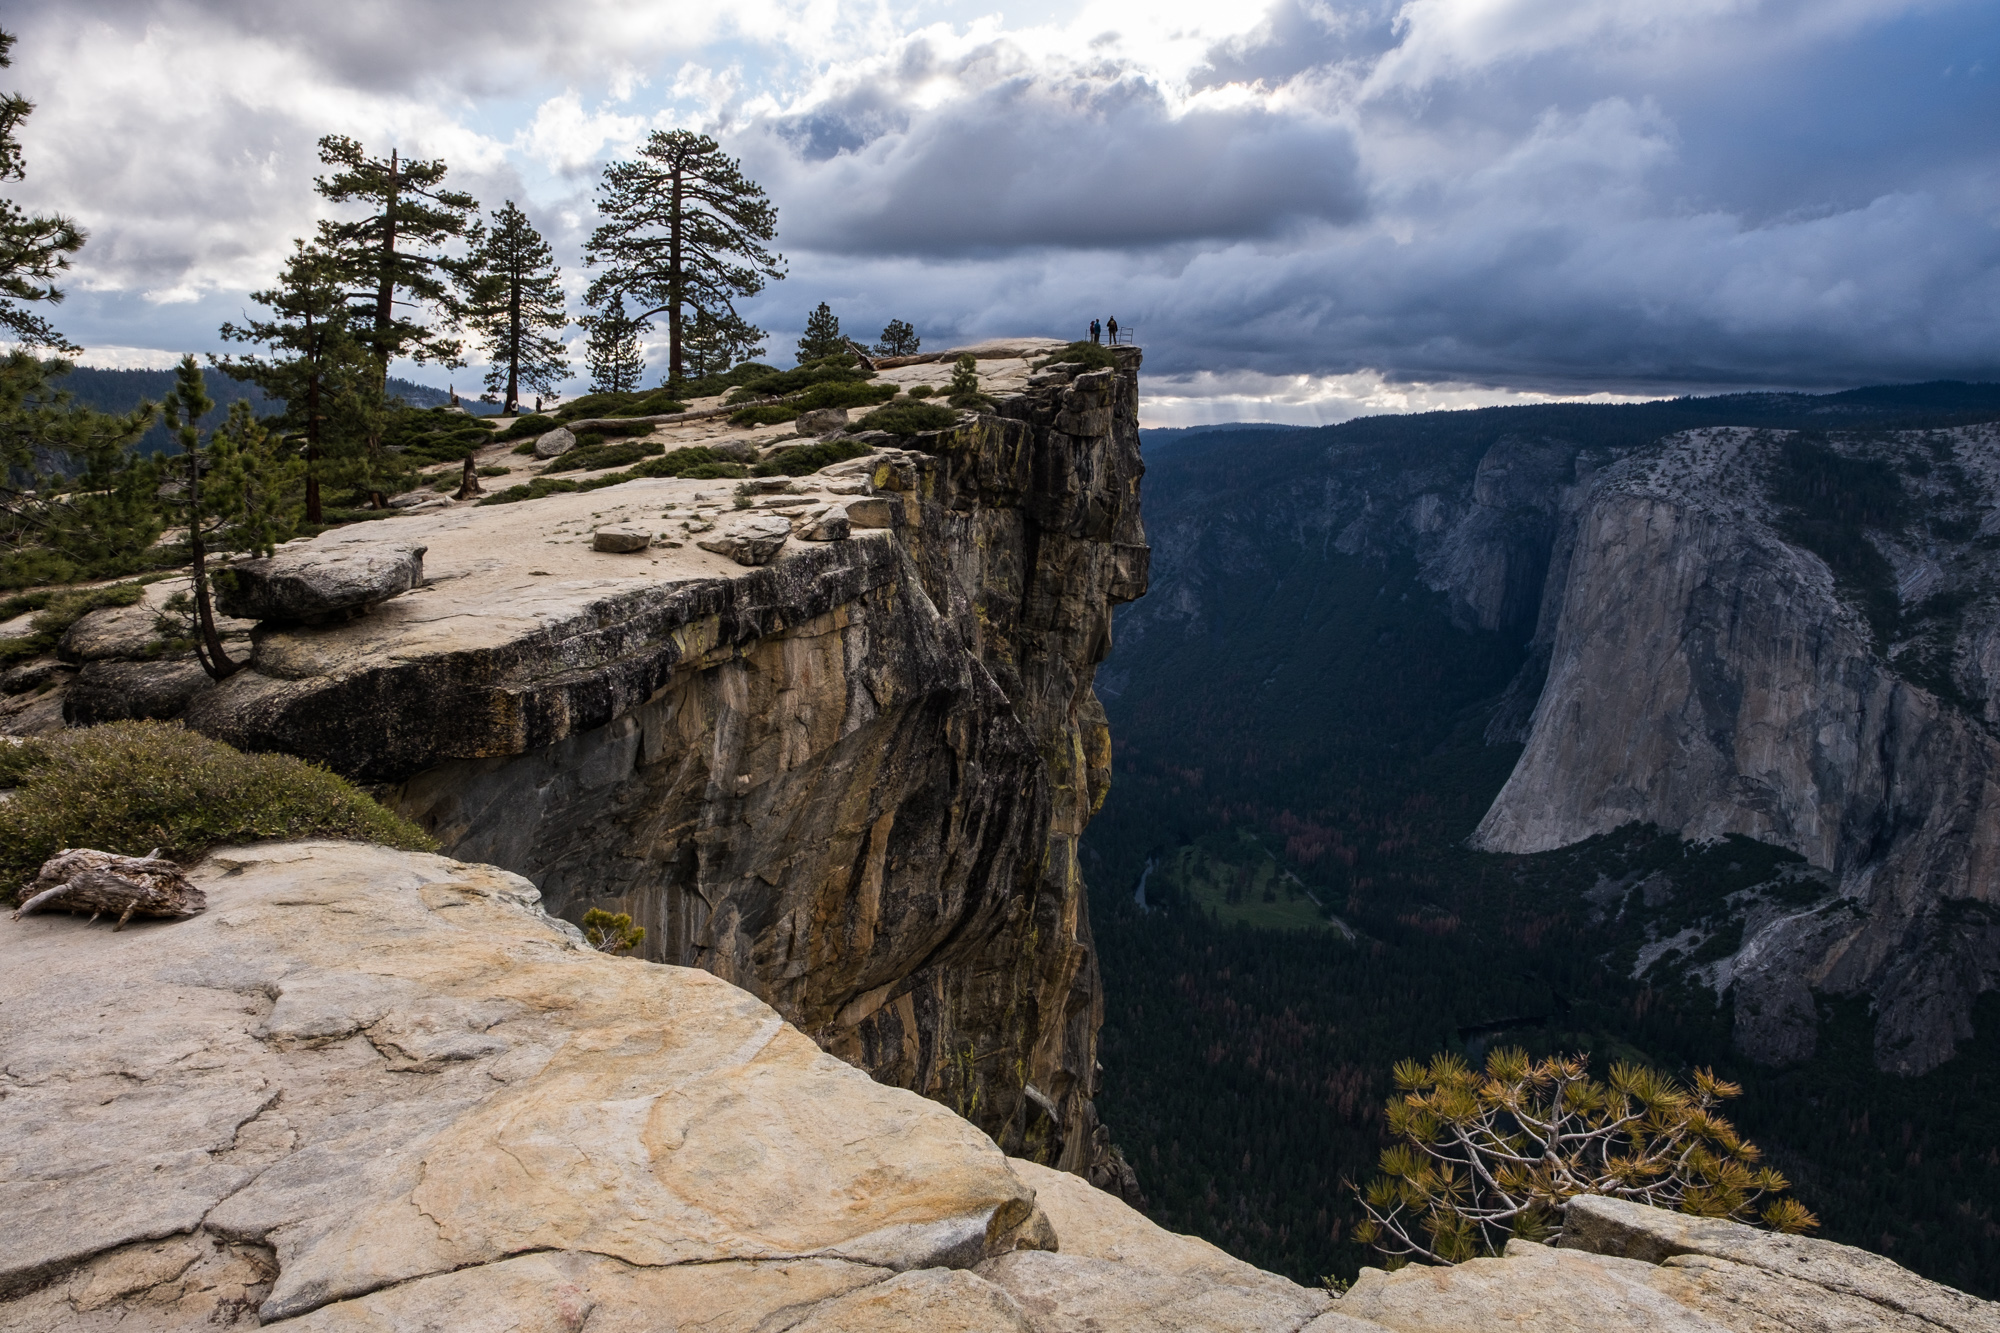 Hikers at the Taft Point lookout. It is a long way down!